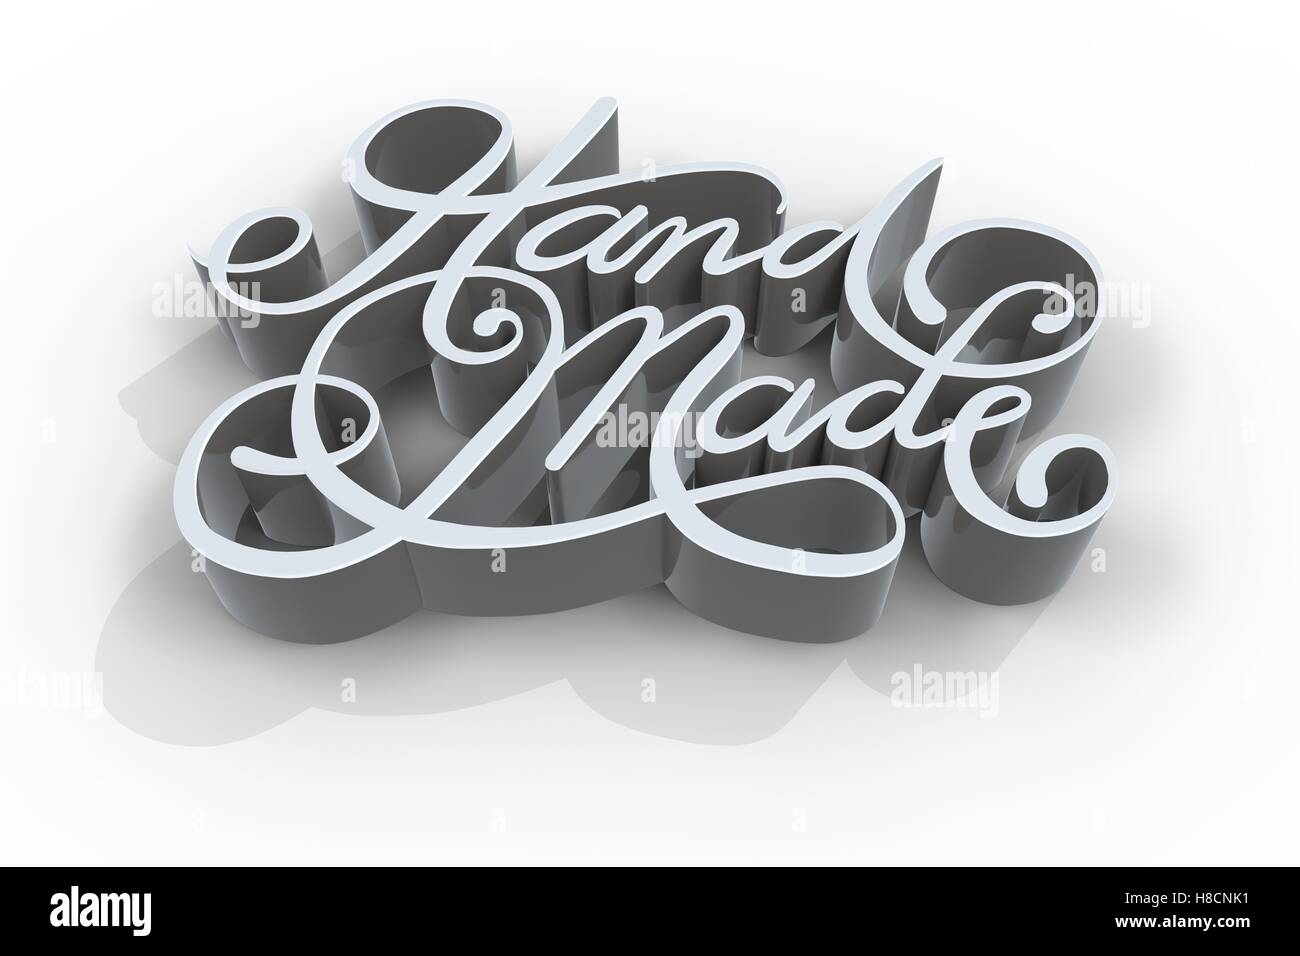 Three dimensional of hand made text - Stock Image